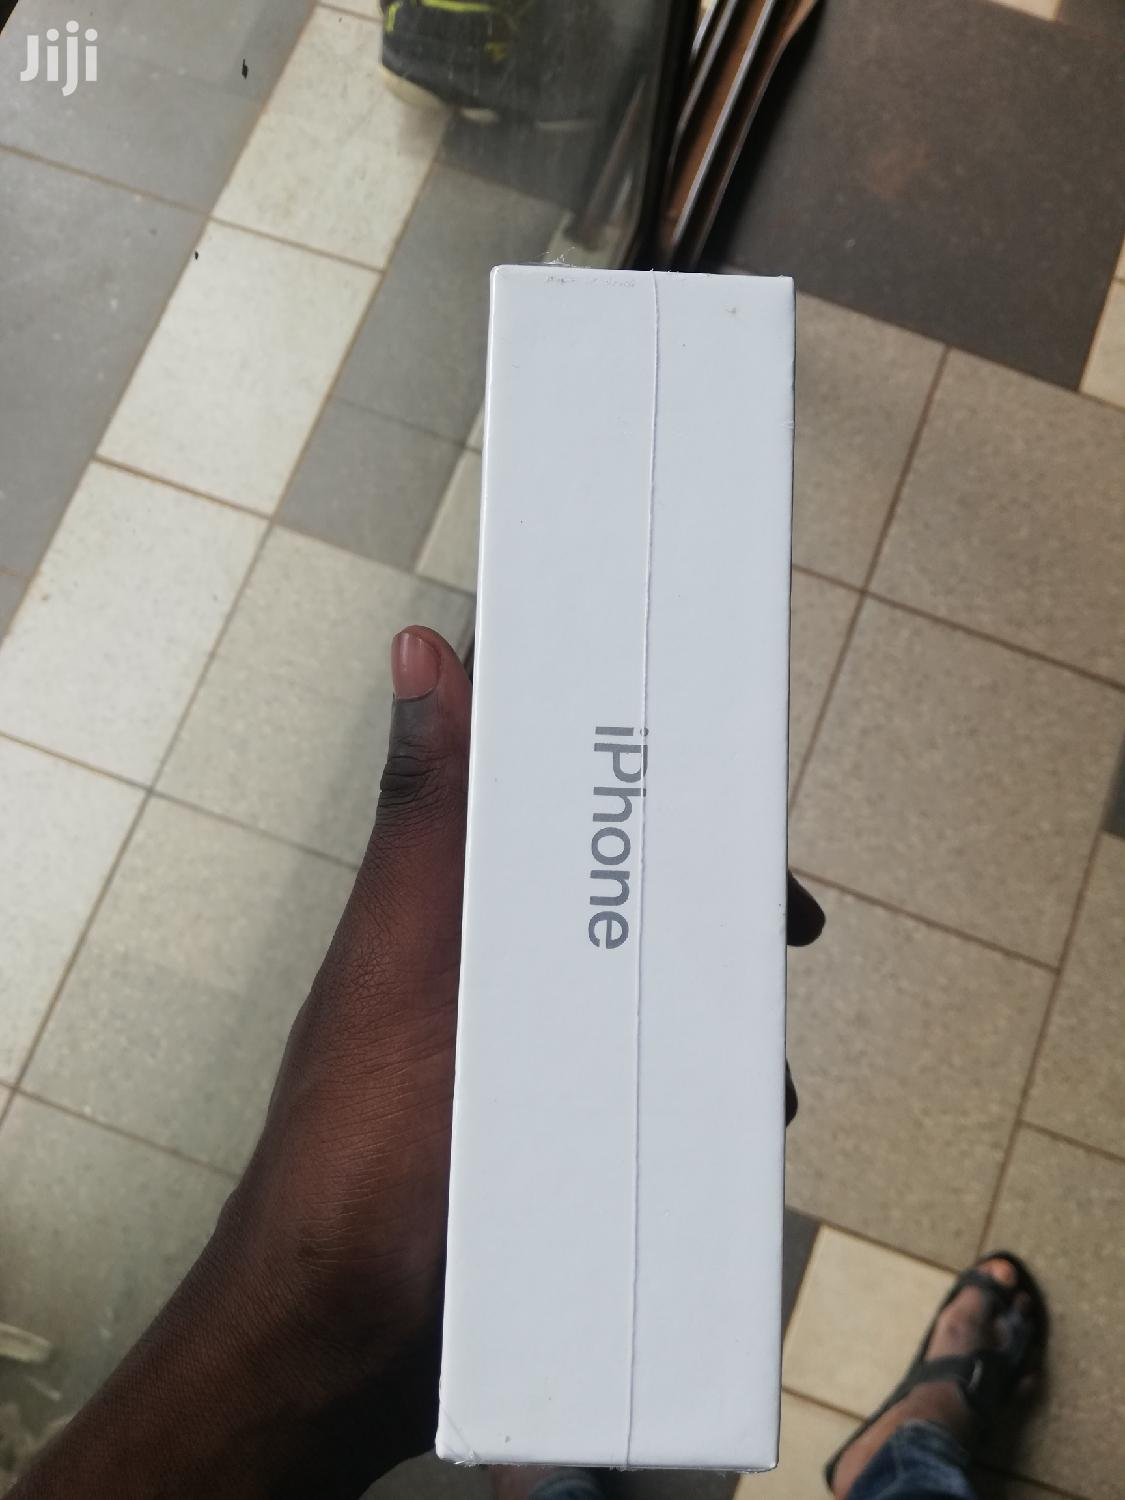 New Apple iPhone 7 Plus 128 GB Silver | Mobile Phones for sale in Kampala, Central Region, Uganda